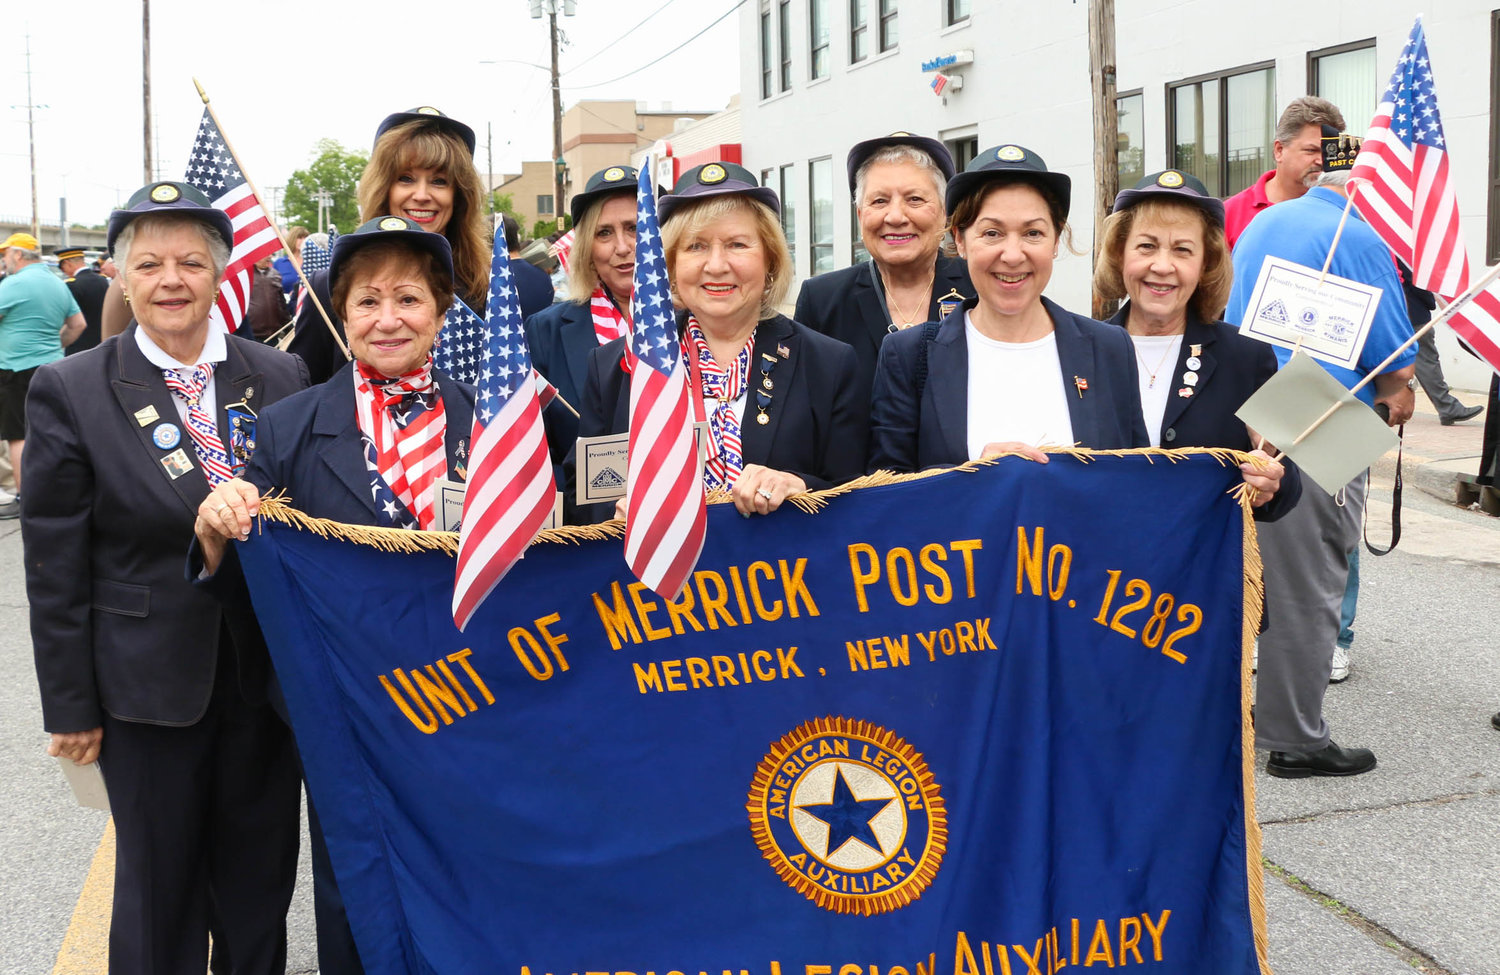 American Legion Auxiliary, Unit of Merrick Post No. 1282 prepping for the Memorial Day Parade last year.